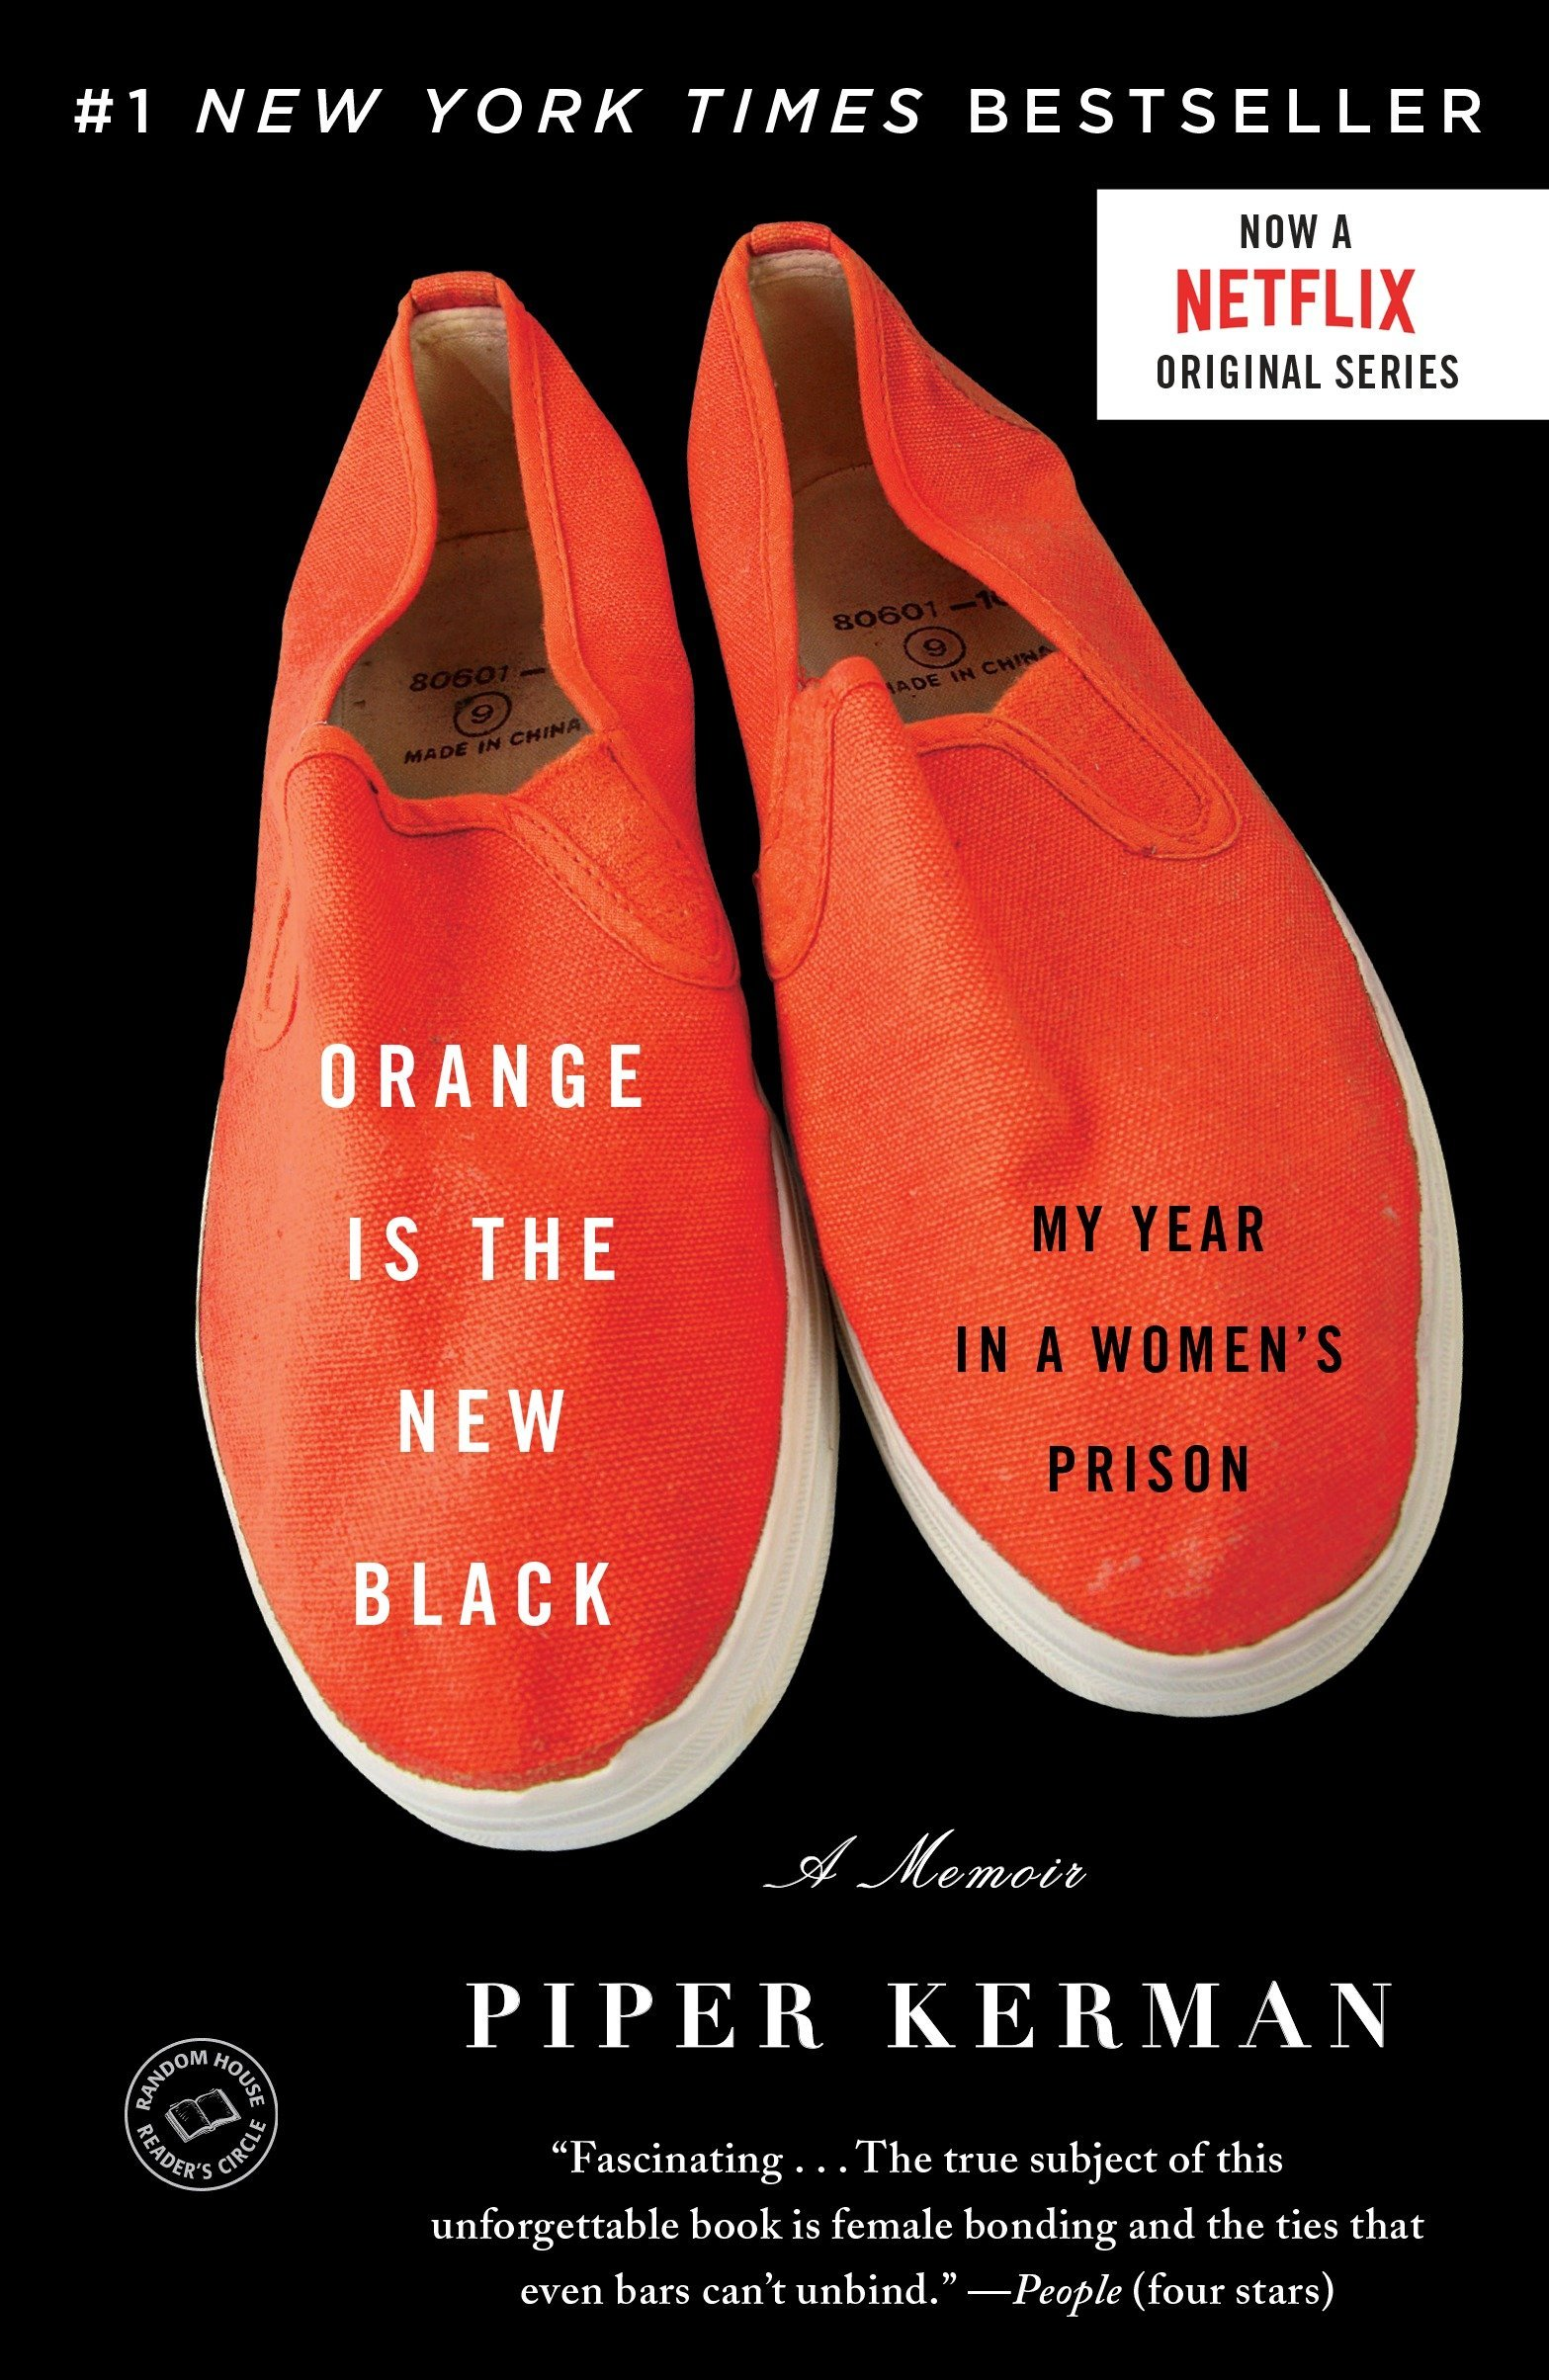 orange-is-the-new-black-book-cover.jpg